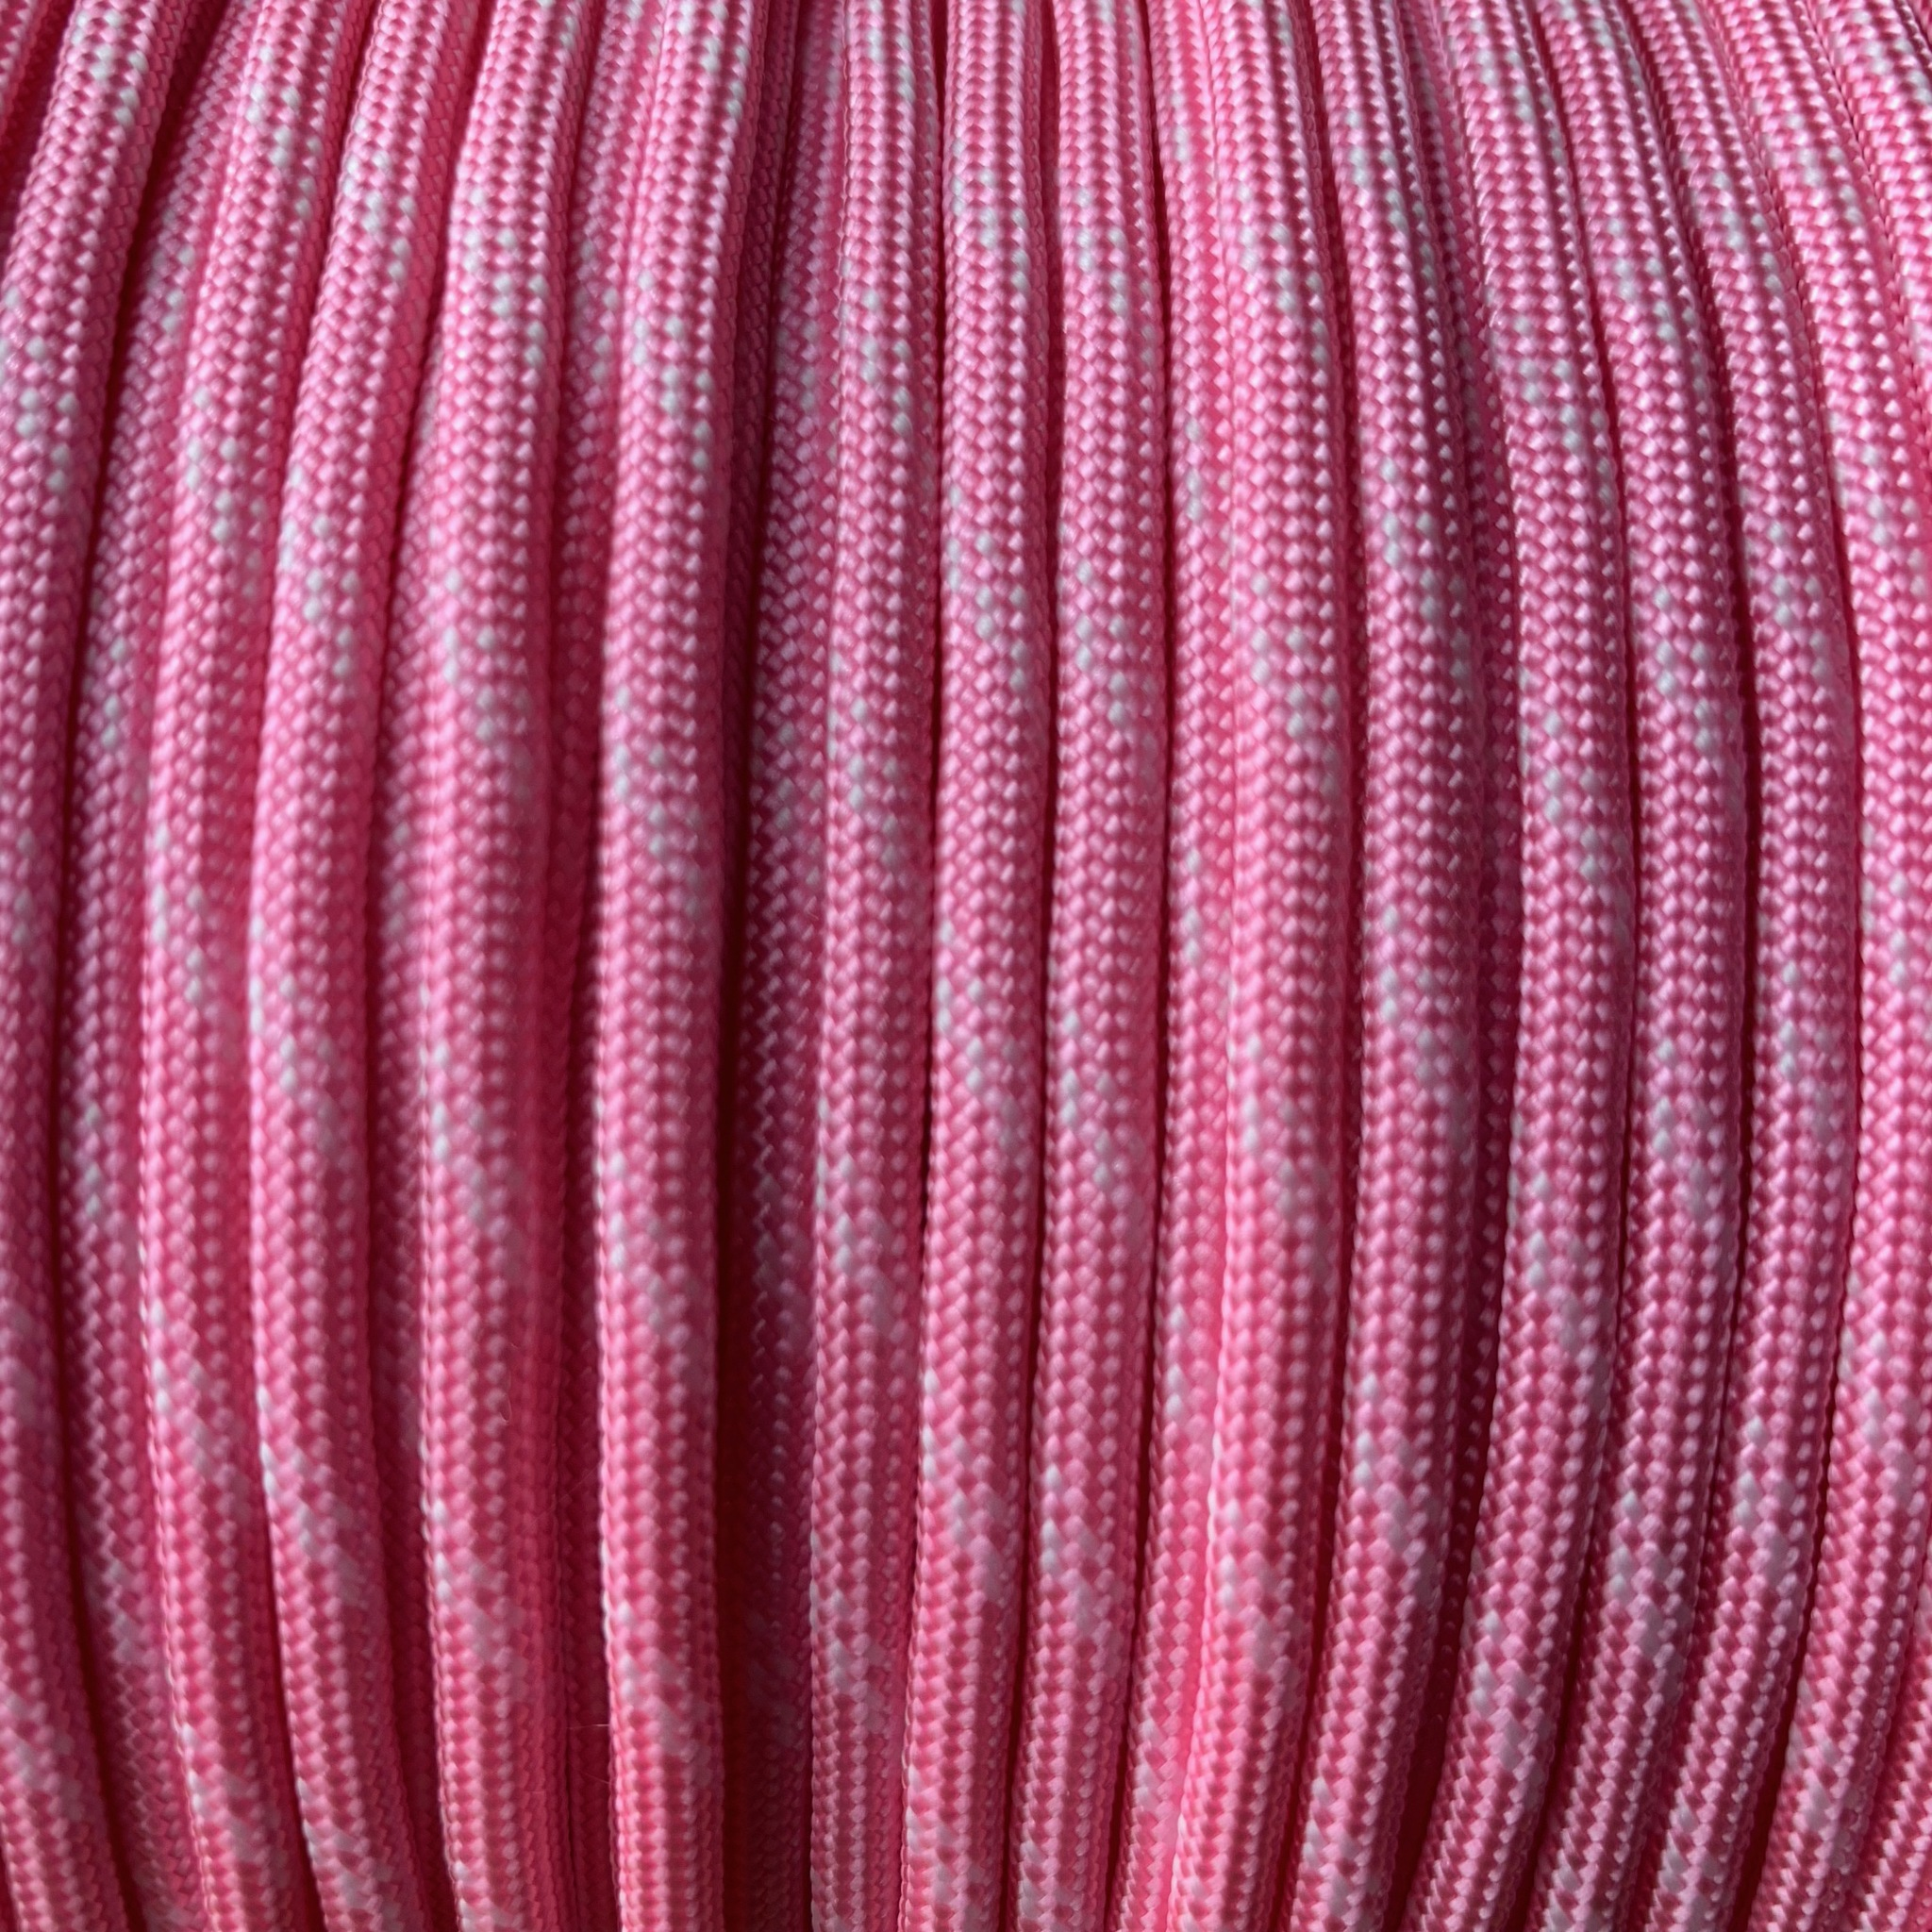 Rose Pink // Glow in the Dark // Paracord 550